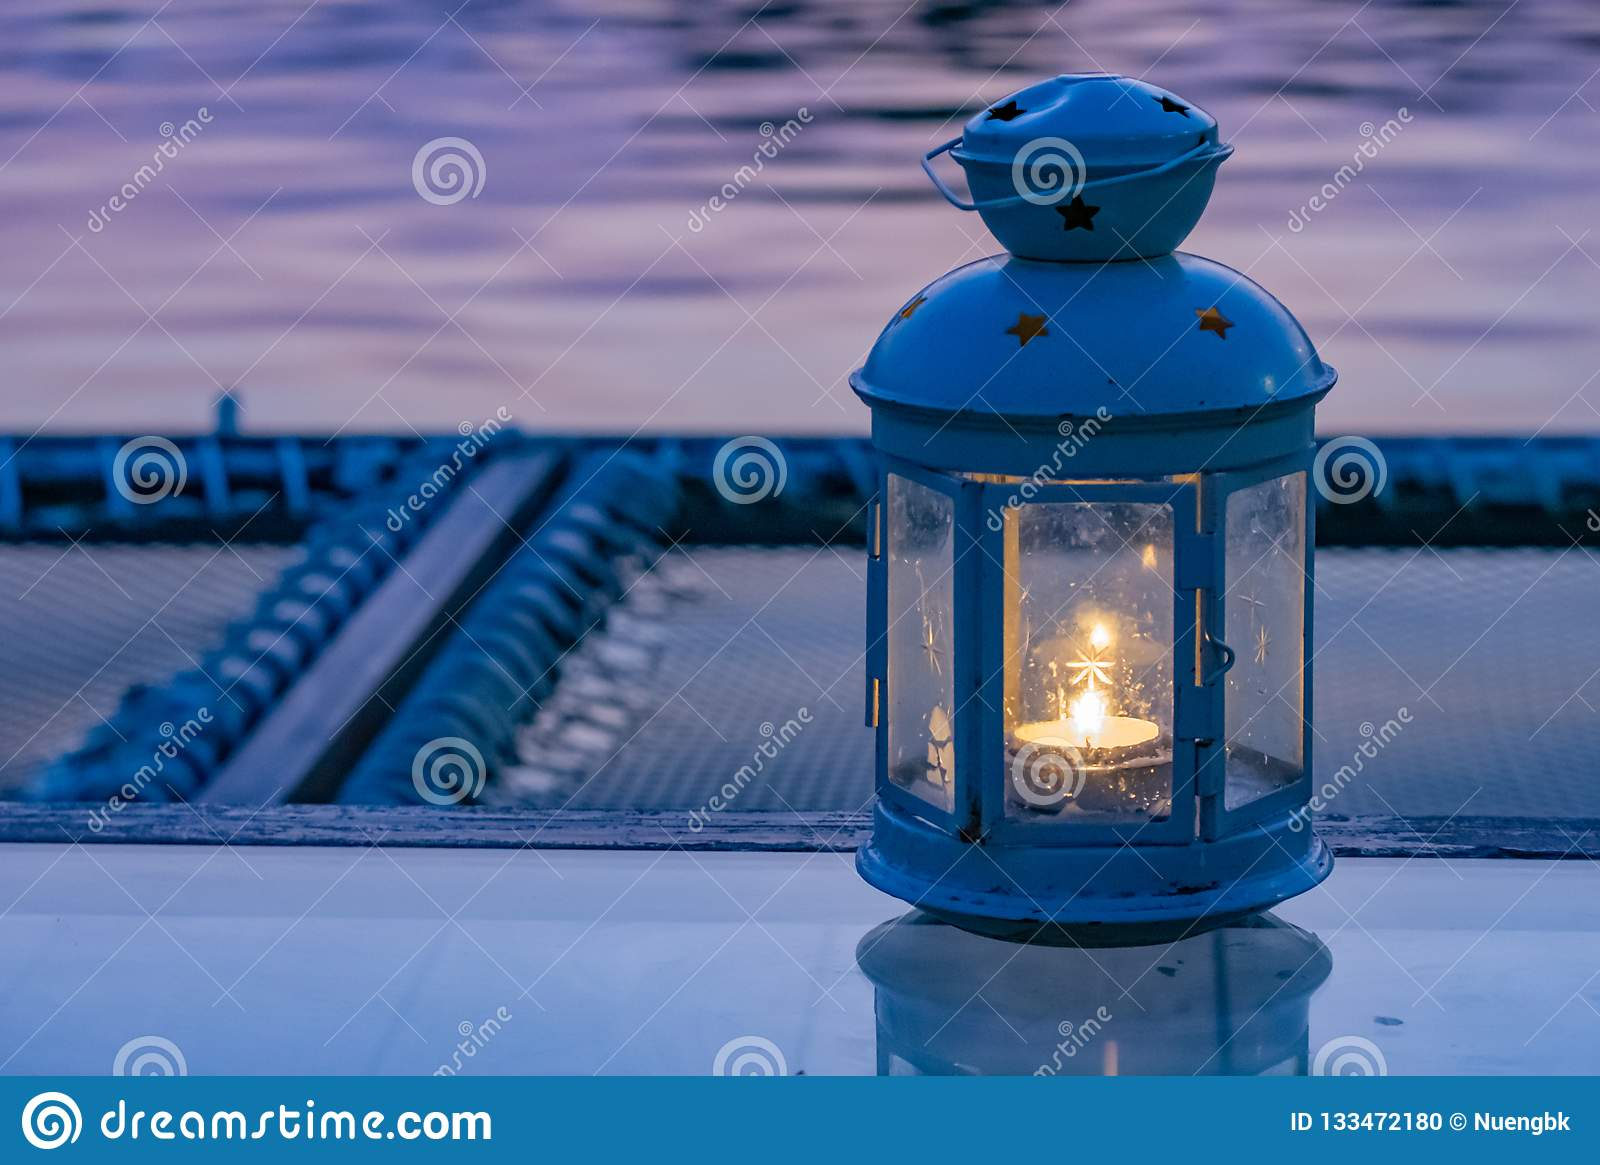 Candle fires are contained in the lamps , Placed on the table